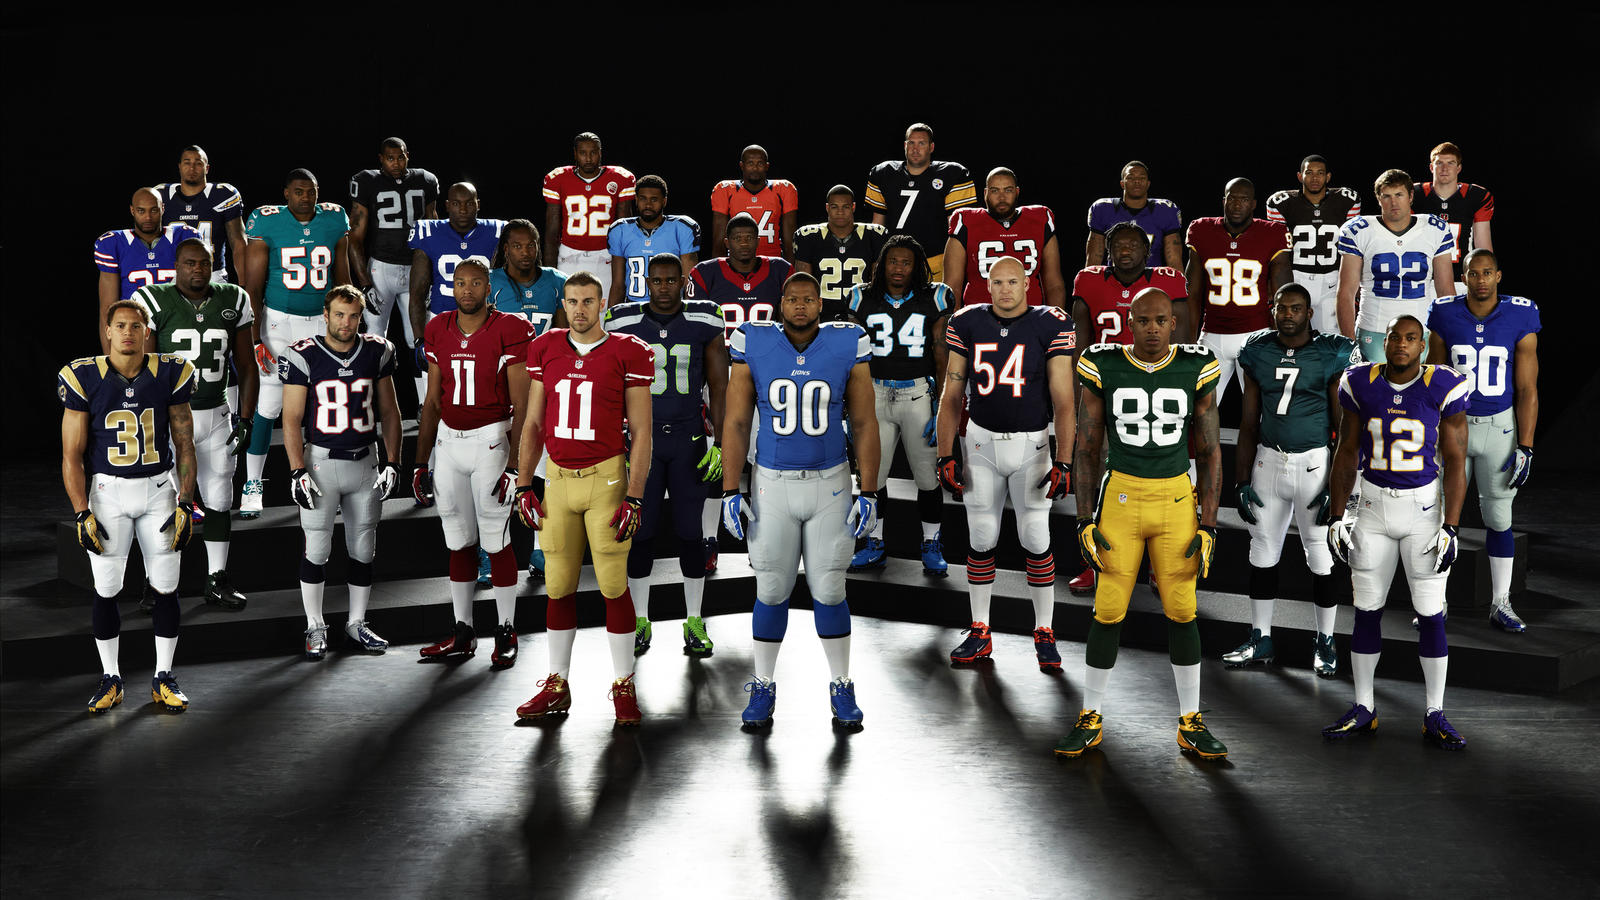 Nike_NFL_2012_TeamUniforms_03APR